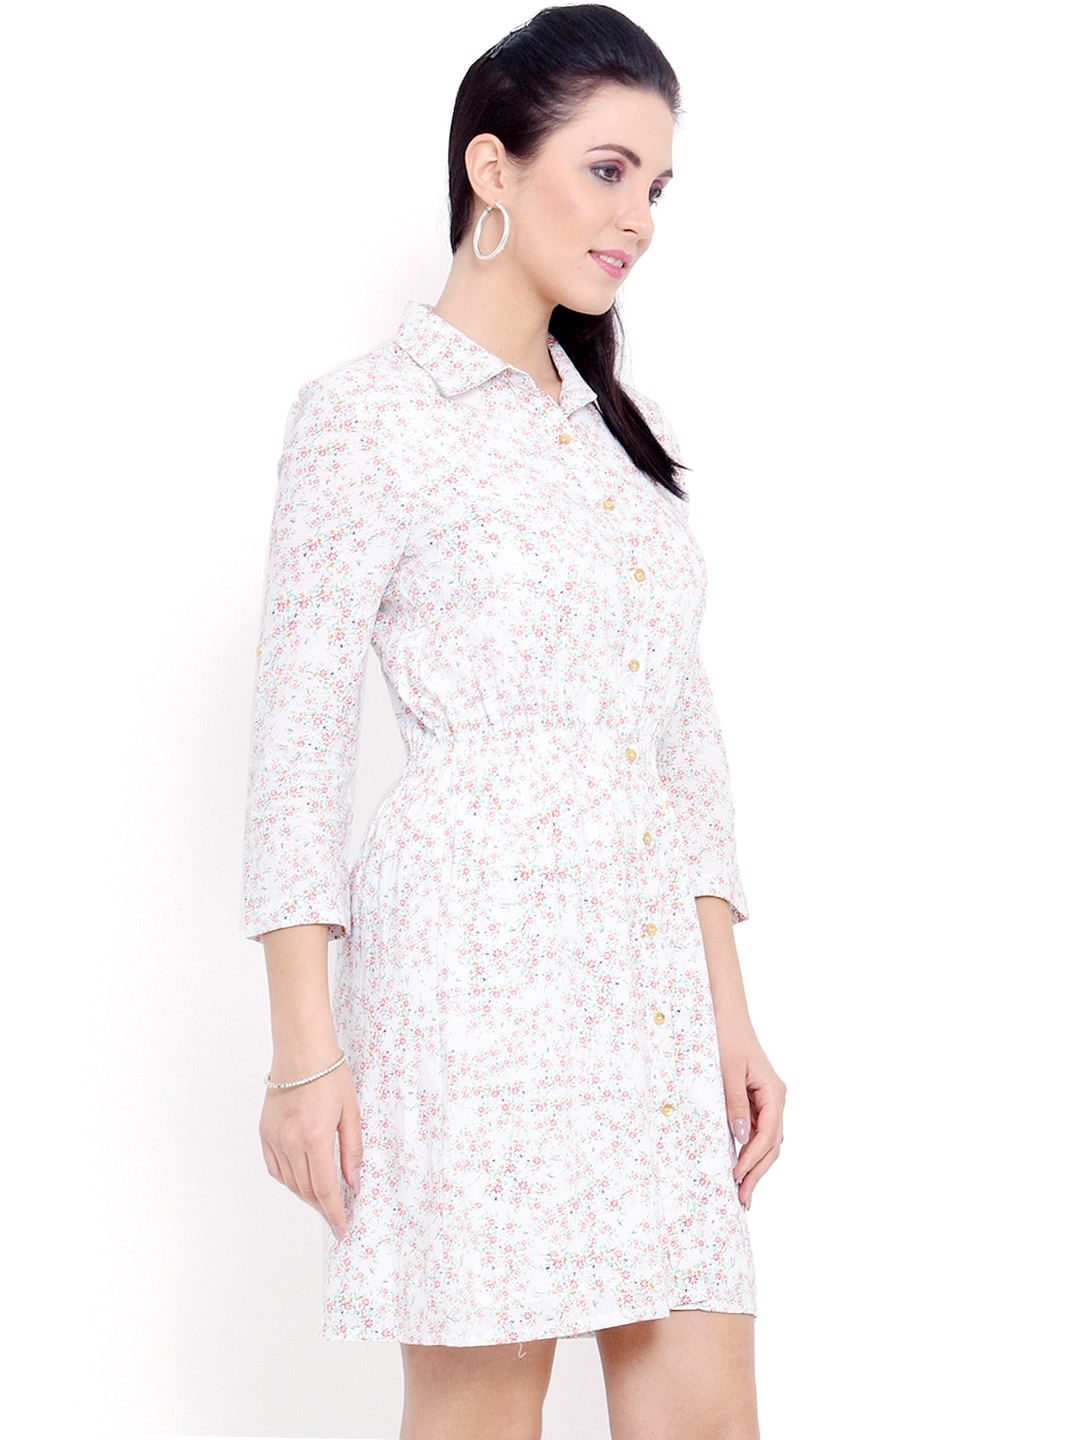 Myntra femenino for tfc white printed shirt dress 751151 for Buy white dress shirt